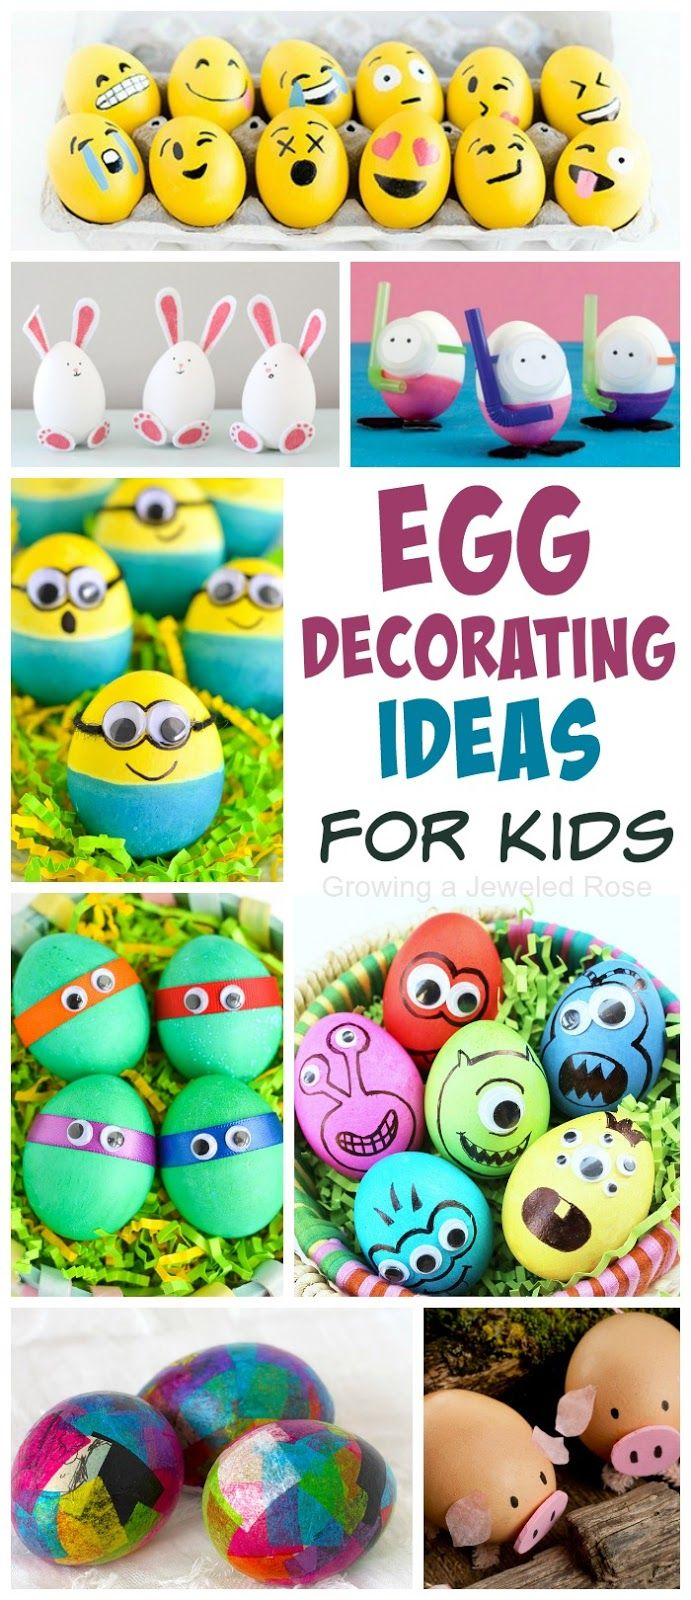 30 AWESOME ways to dye u0026 decorate Easter eggs with kids- so many fun ideas  sc 1 st  Pinterest & Decorating Easter Eggs with Kids | Easter Egg and Decorating